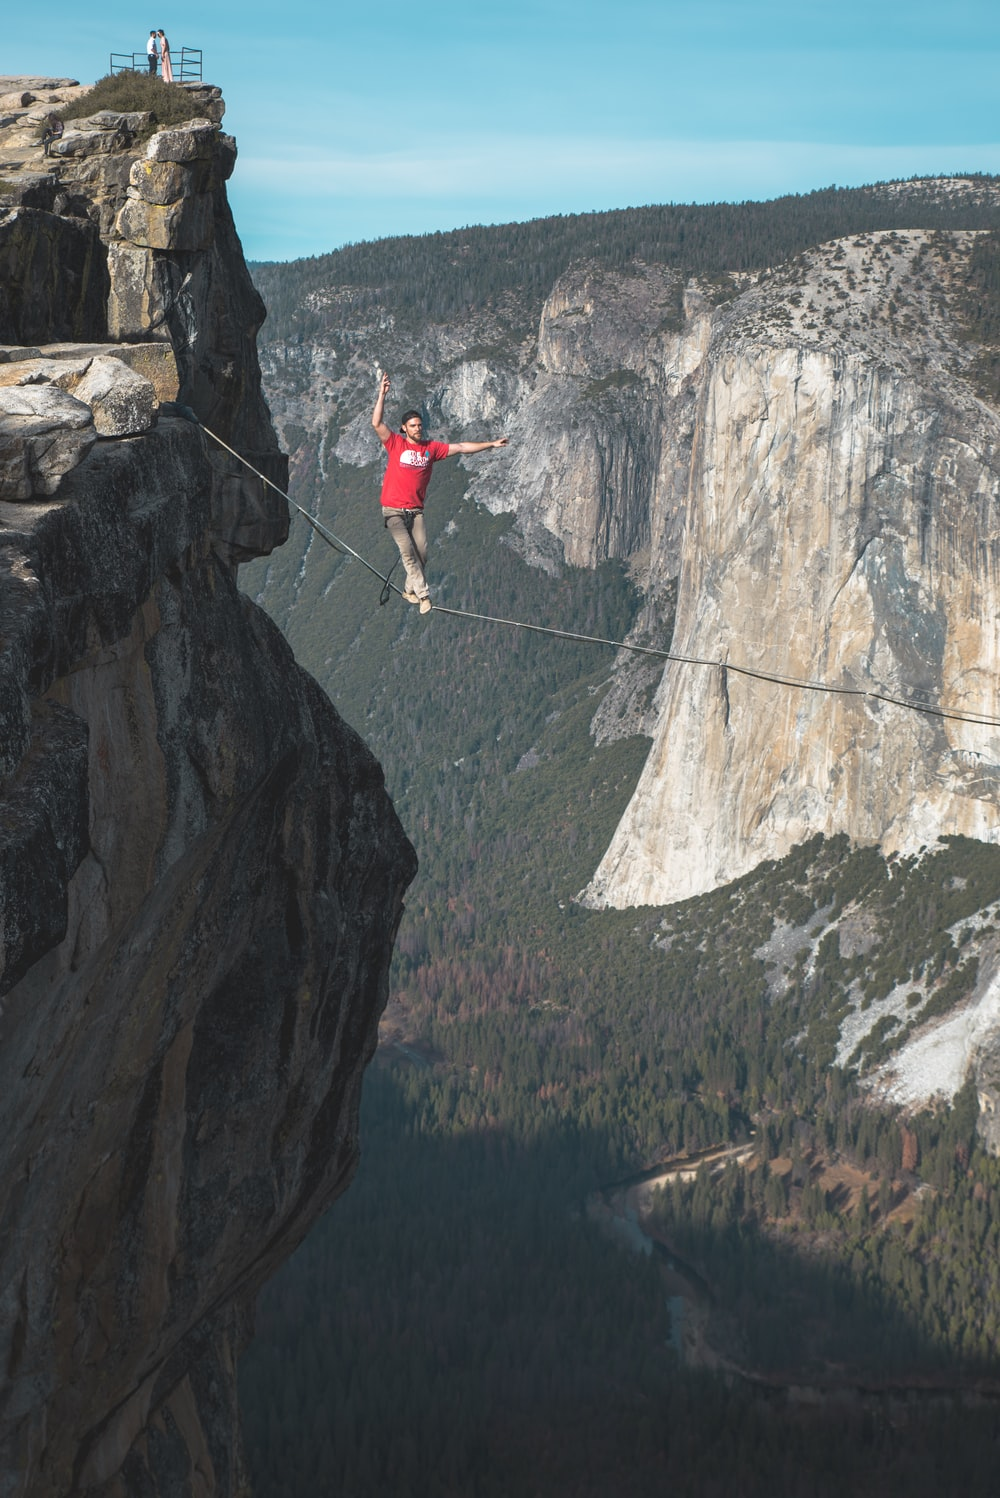 person standing on rope near mountain cliff